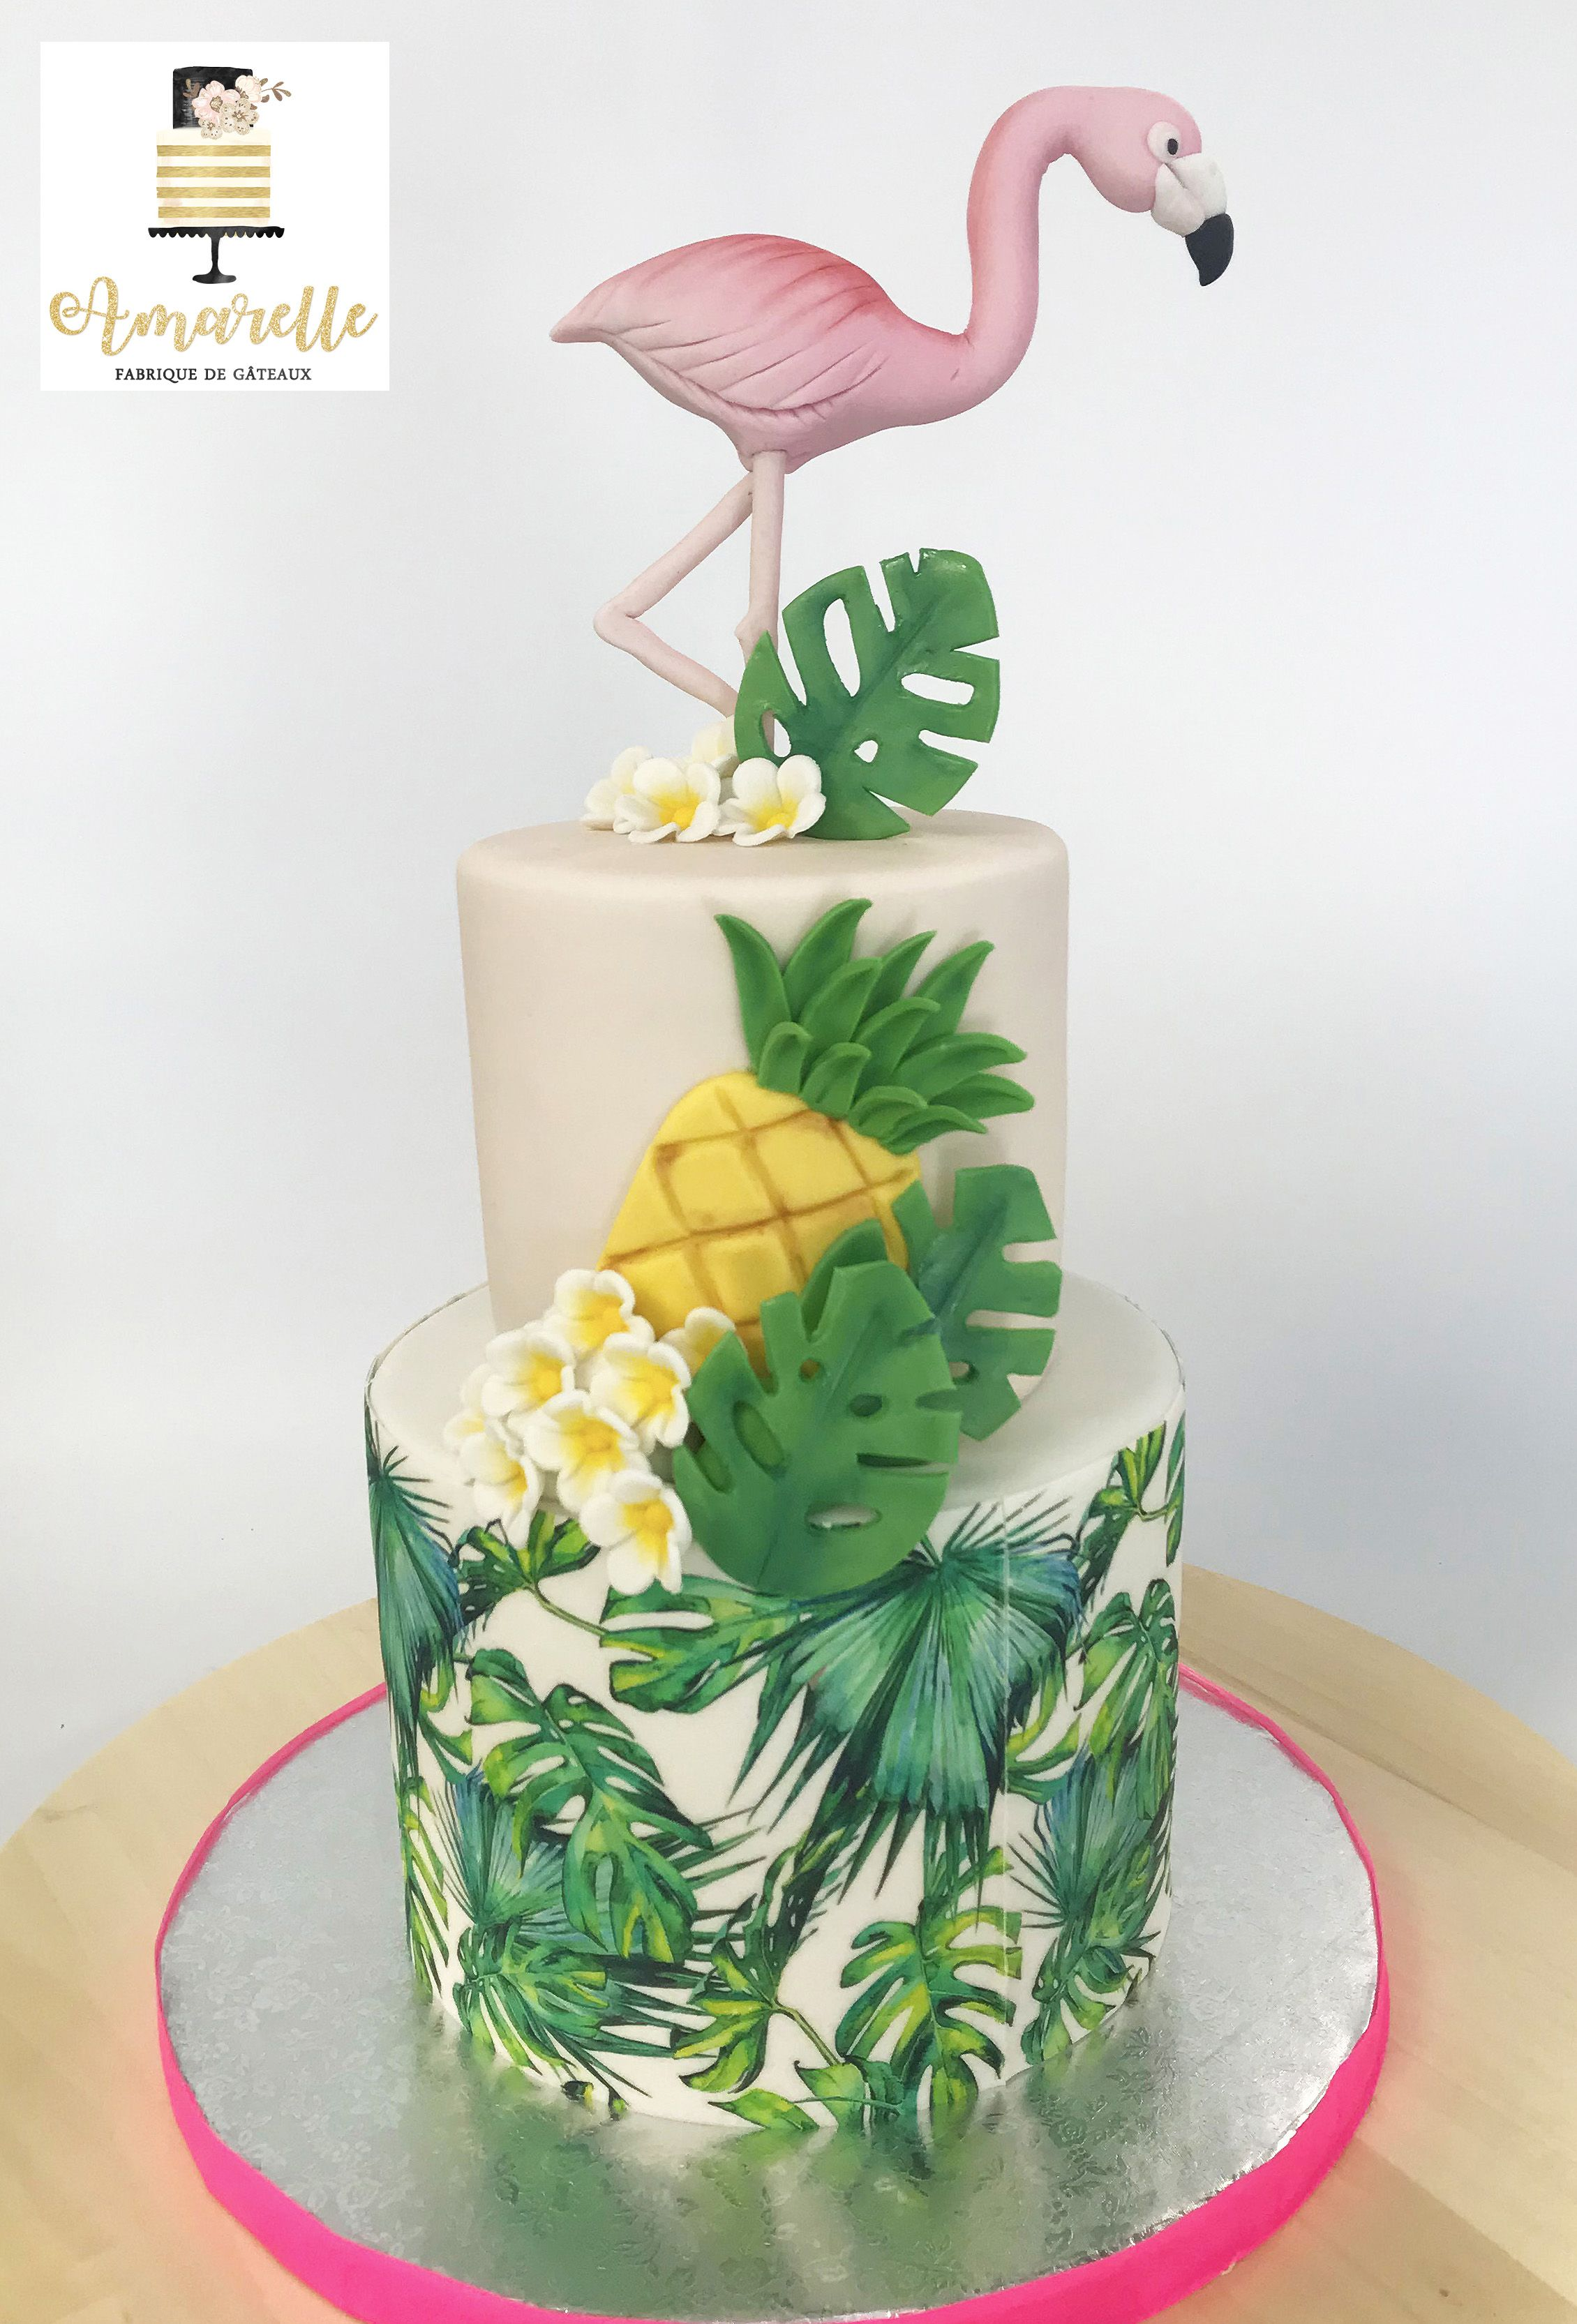 gâteau exotique tropical flamant rose. topical cake pink flamingo